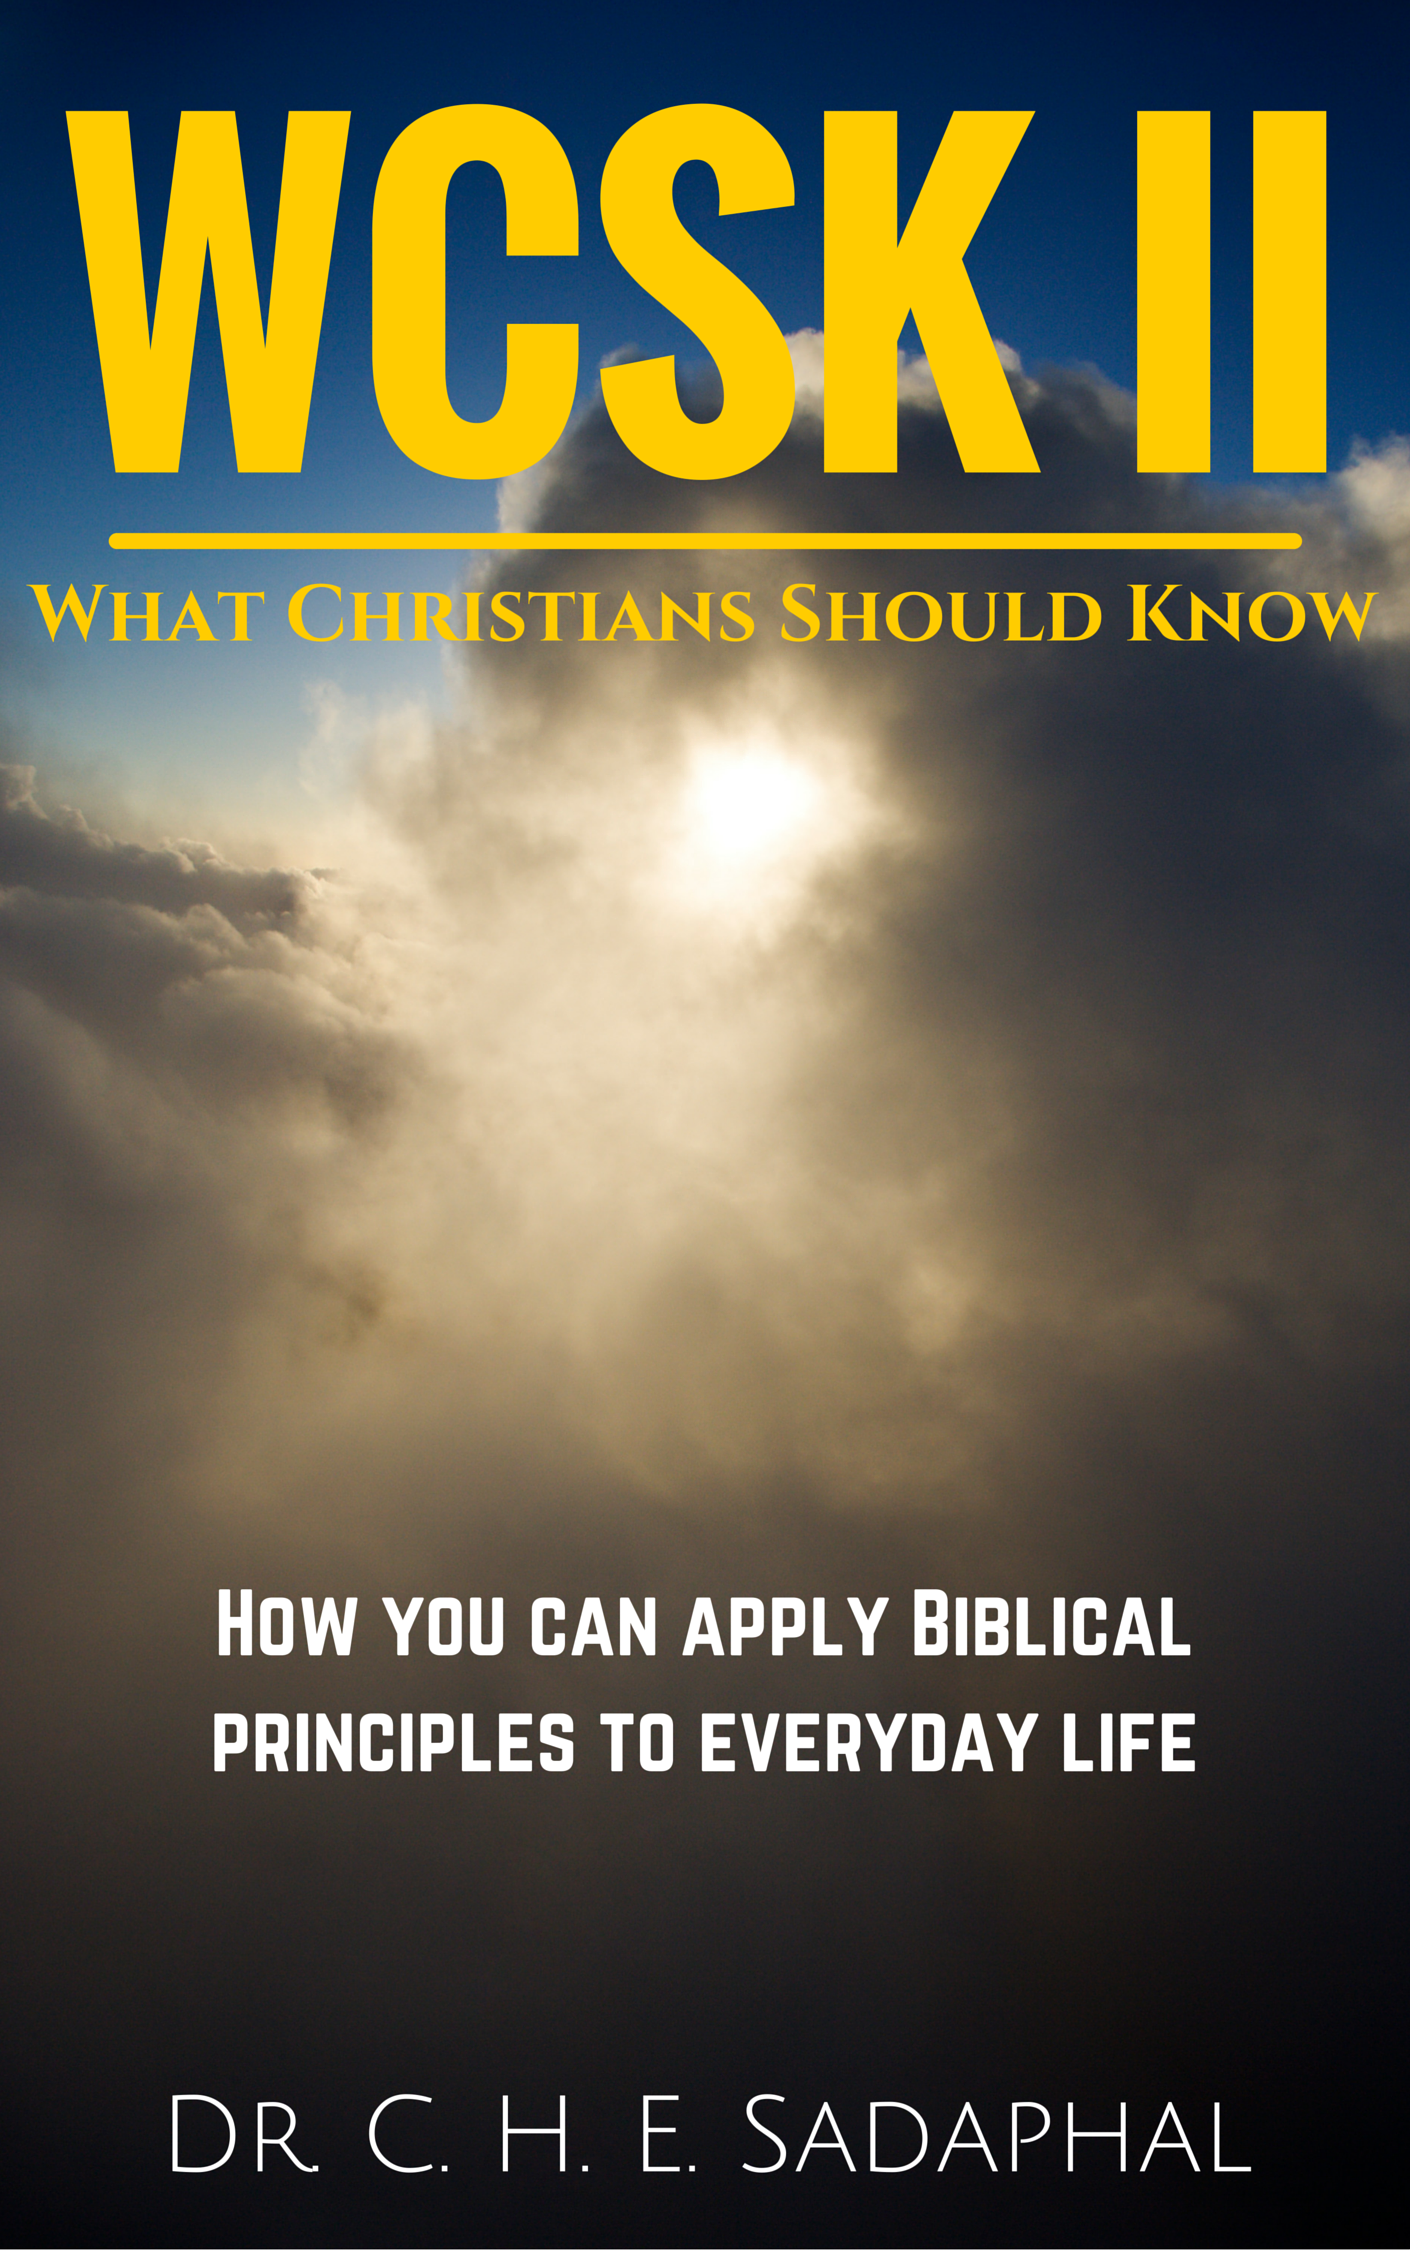 an introduction to the analysis of principals of biblical faith